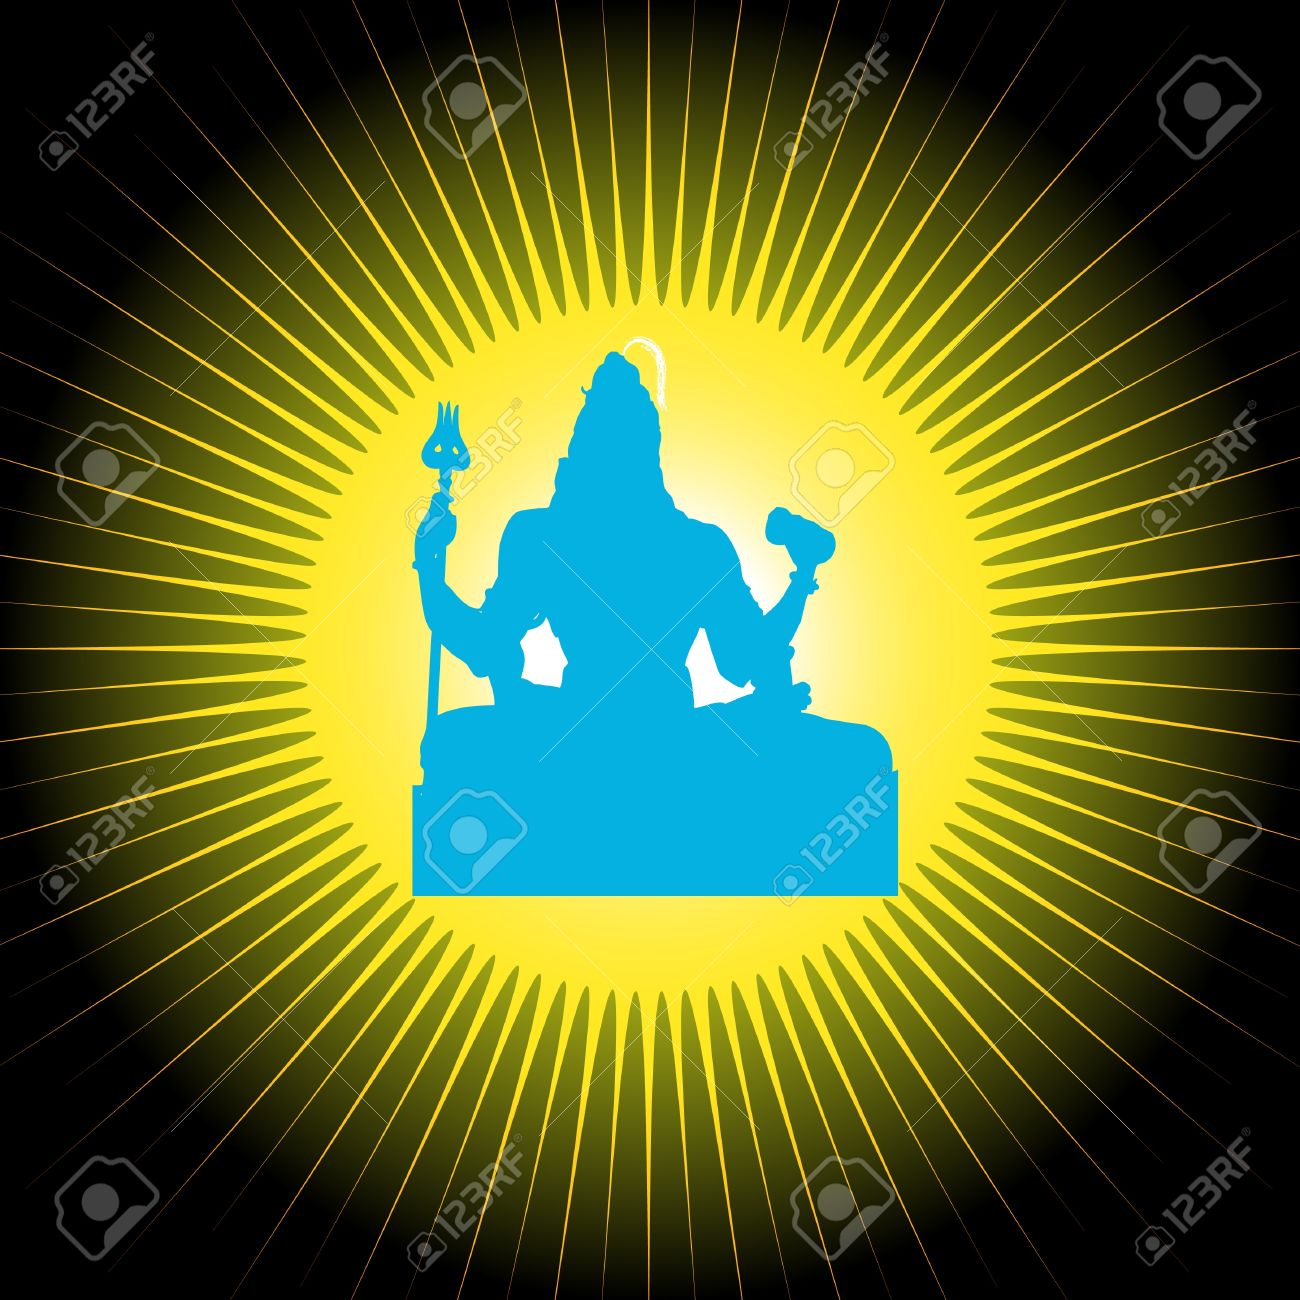 Indian God Shiva With Sun In Background Stock Photo, Picture And